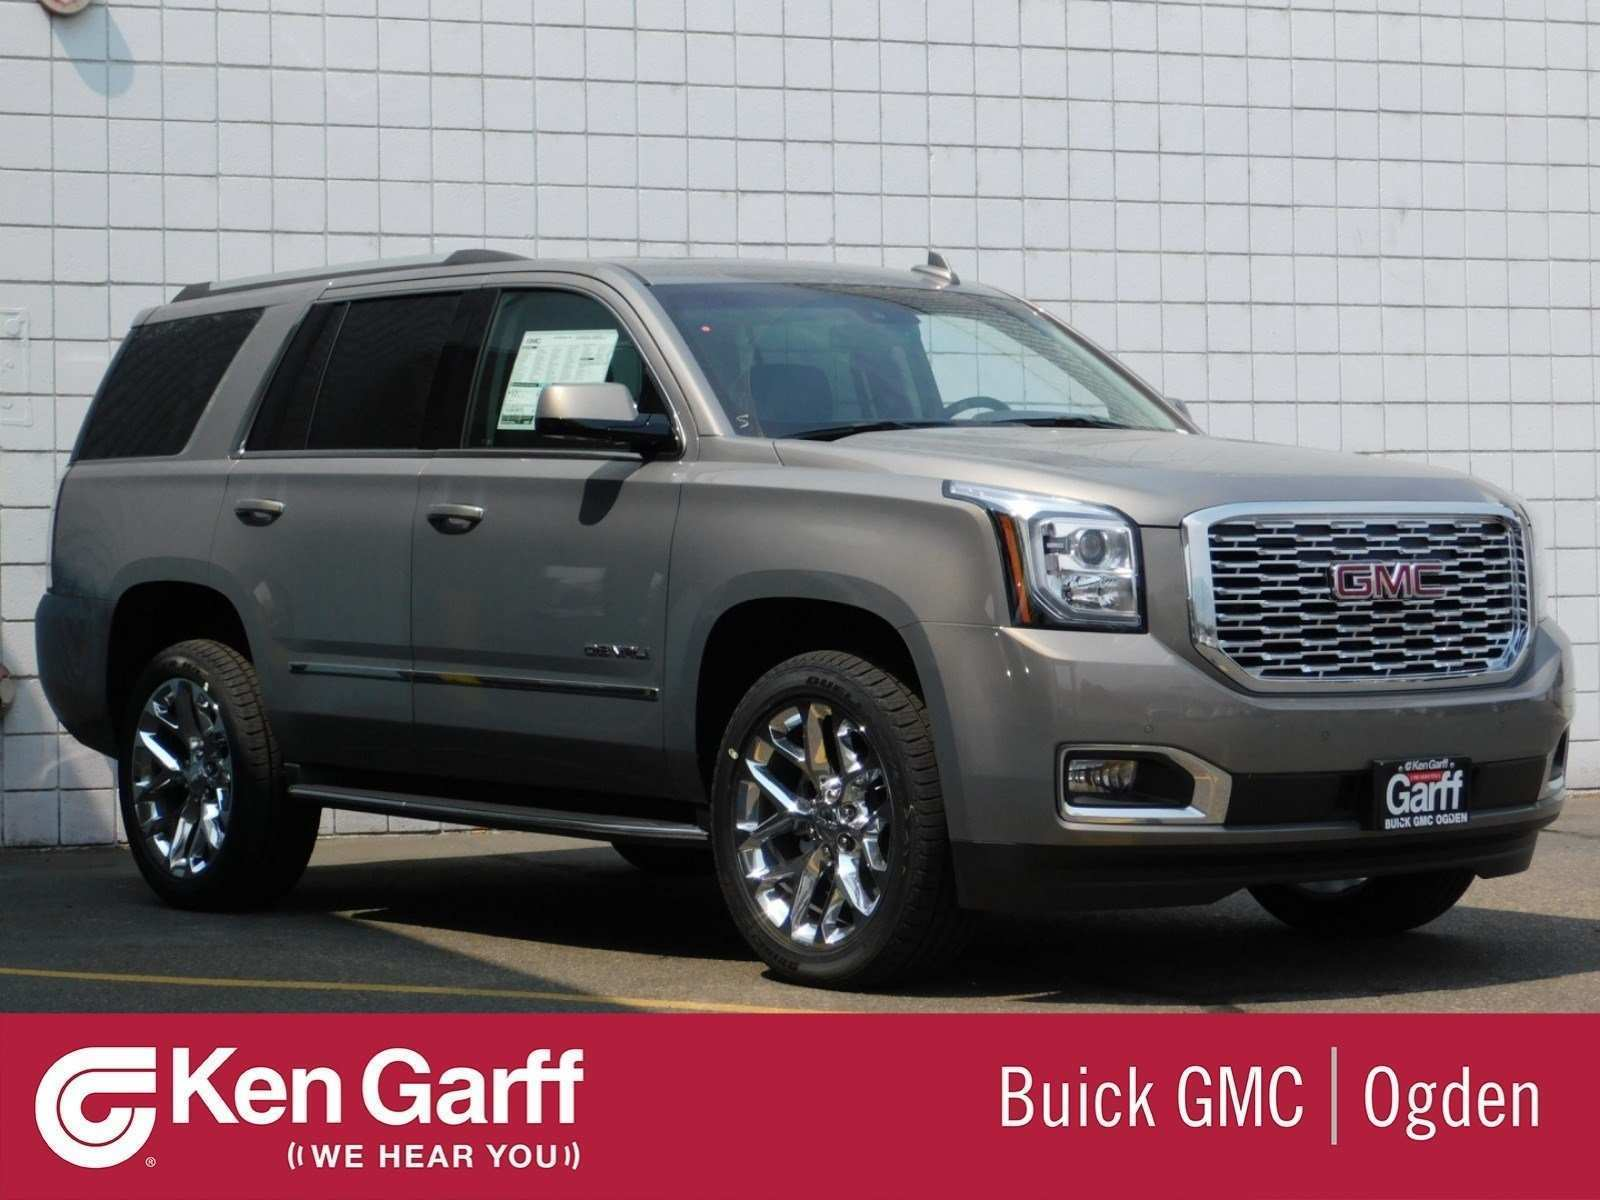 83 Gallery of The Gmc Denali Yukon 2019 Redesign Specs and Review for The Gmc Denali Yukon 2019 Redesign